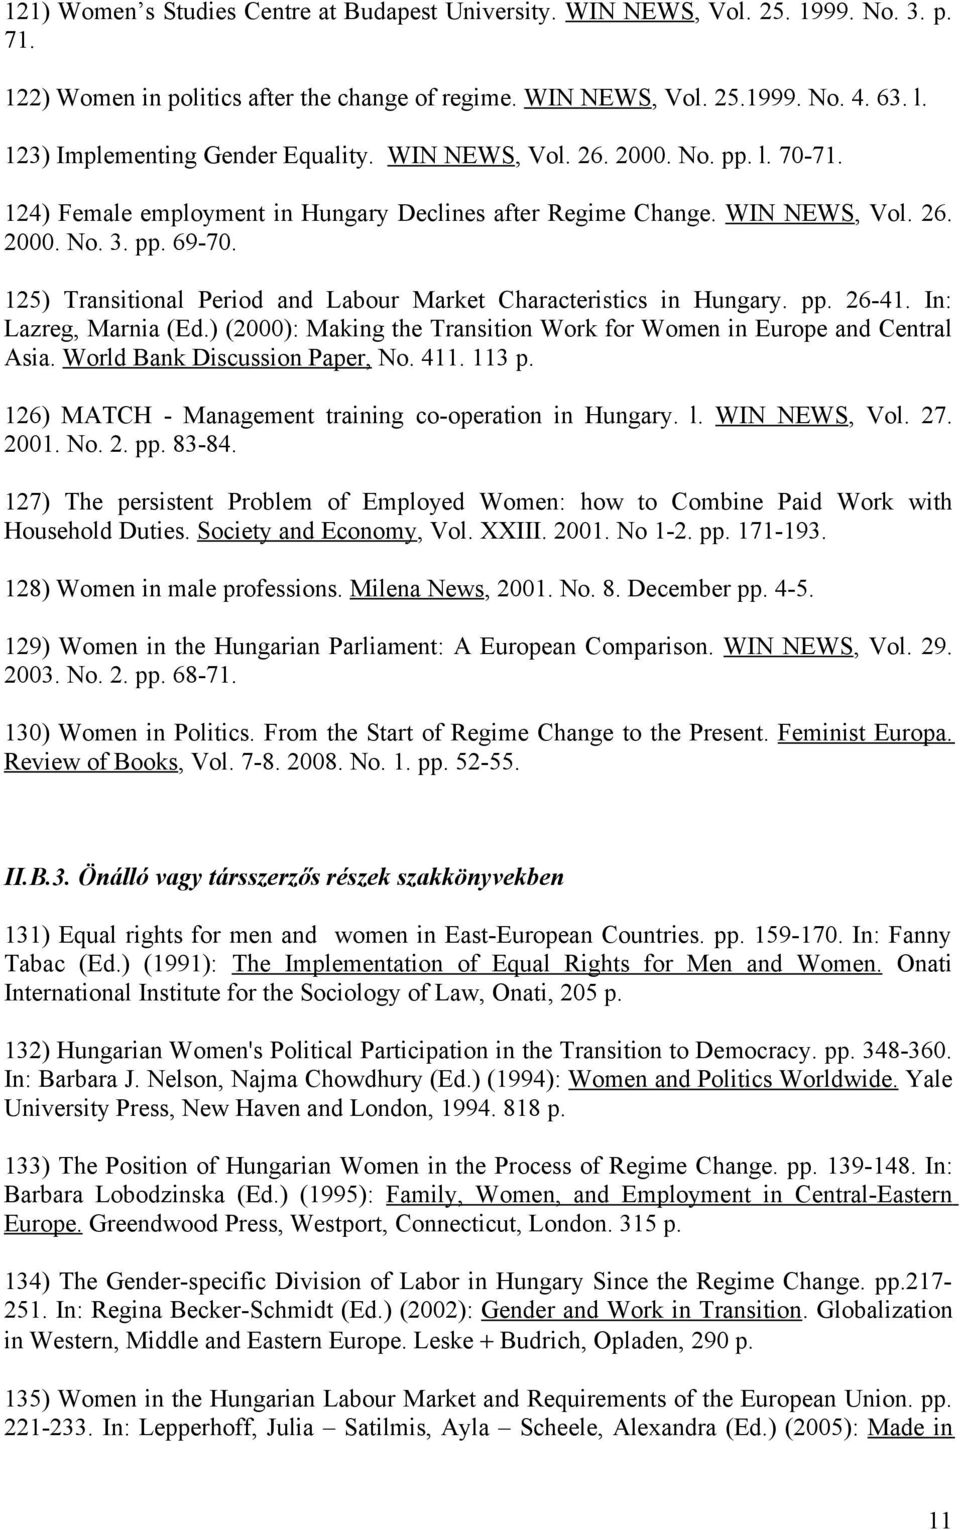 125) Transitional Period and Labour Market Characteristics in Hungary. pp. 26-41. In: Lazreg, Marnia (Ed.) (2000): Making the Transition Work for Women in Europe and Central Asia.